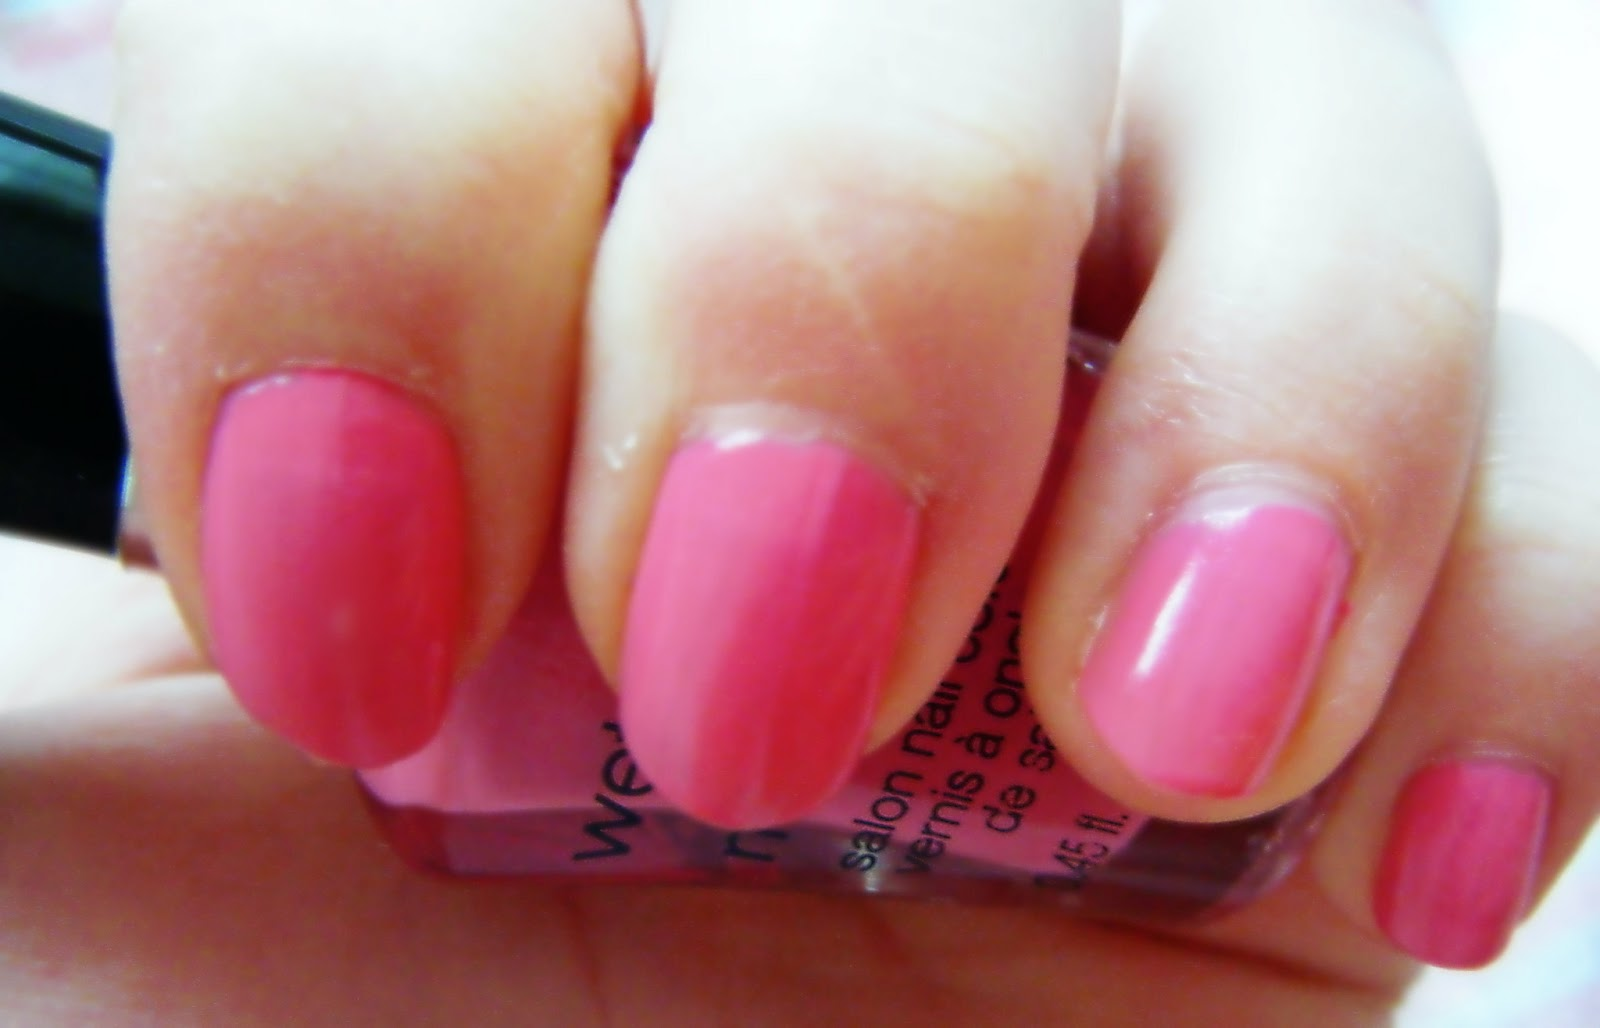 Wet N Wild Candy Licious Nail Polish Dolly Dowsie Megalast Salon Color Candylicious I Shall Definitely Be Buying Polishes In The Future Now Have Nails Yay